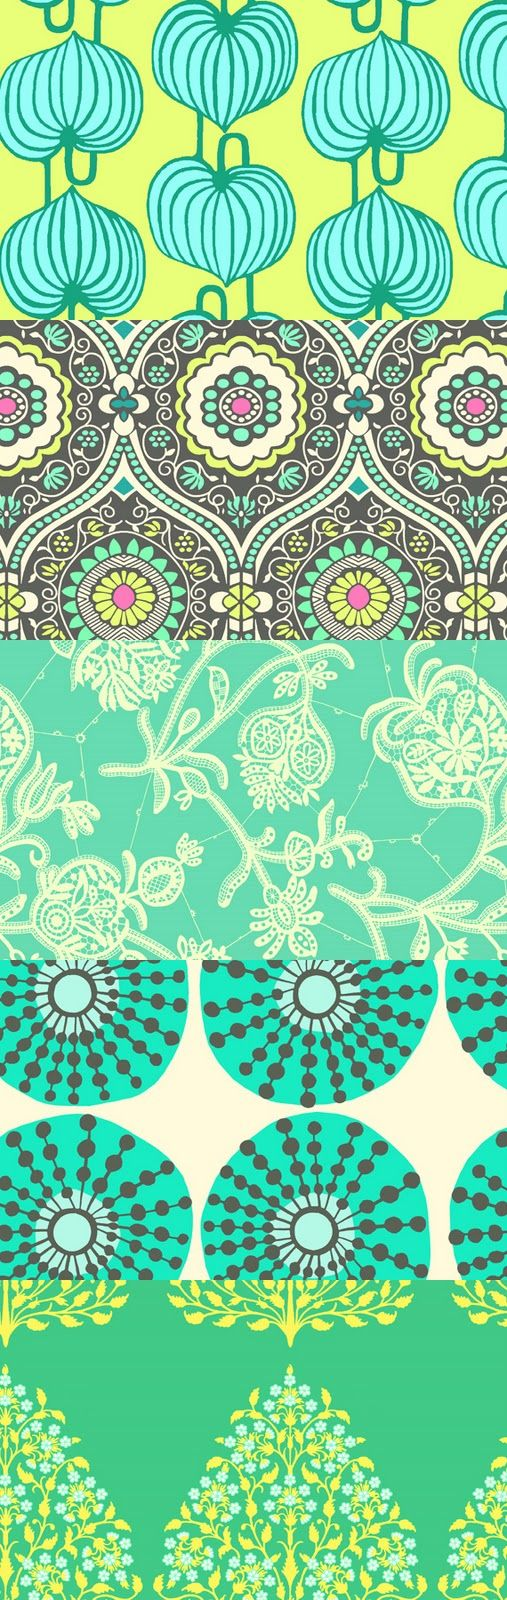 Amy Butler Fabric aqua teal turquoise